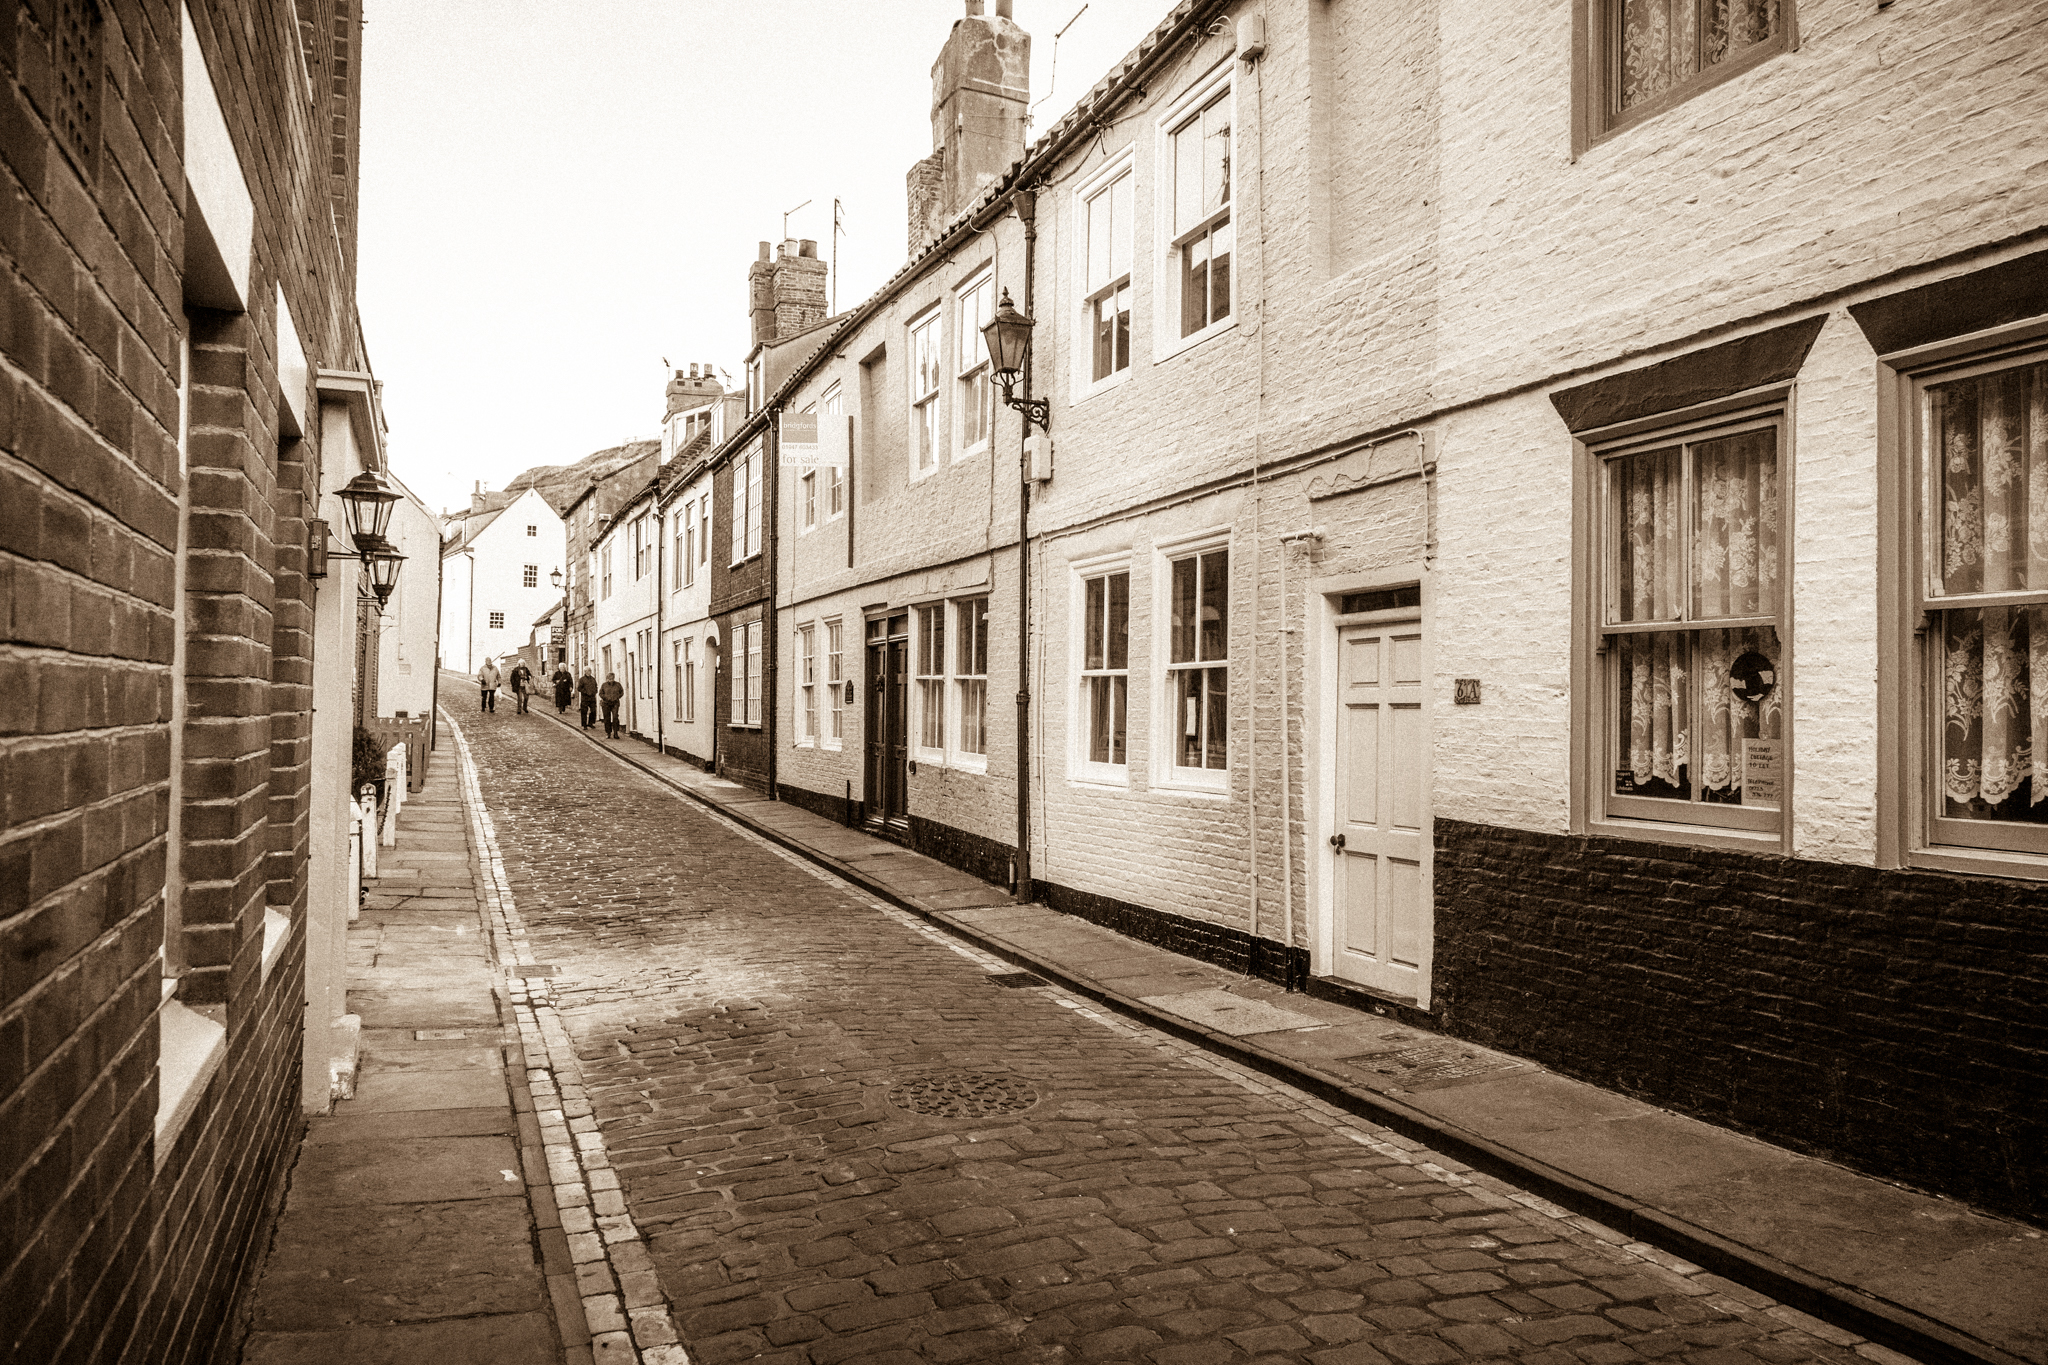 This traditional street in Whitby, north Yorkshire, leads visitors to the old kipper smoke house which has been in constant operation for generations. The smell as you walk this street is mouth watering.